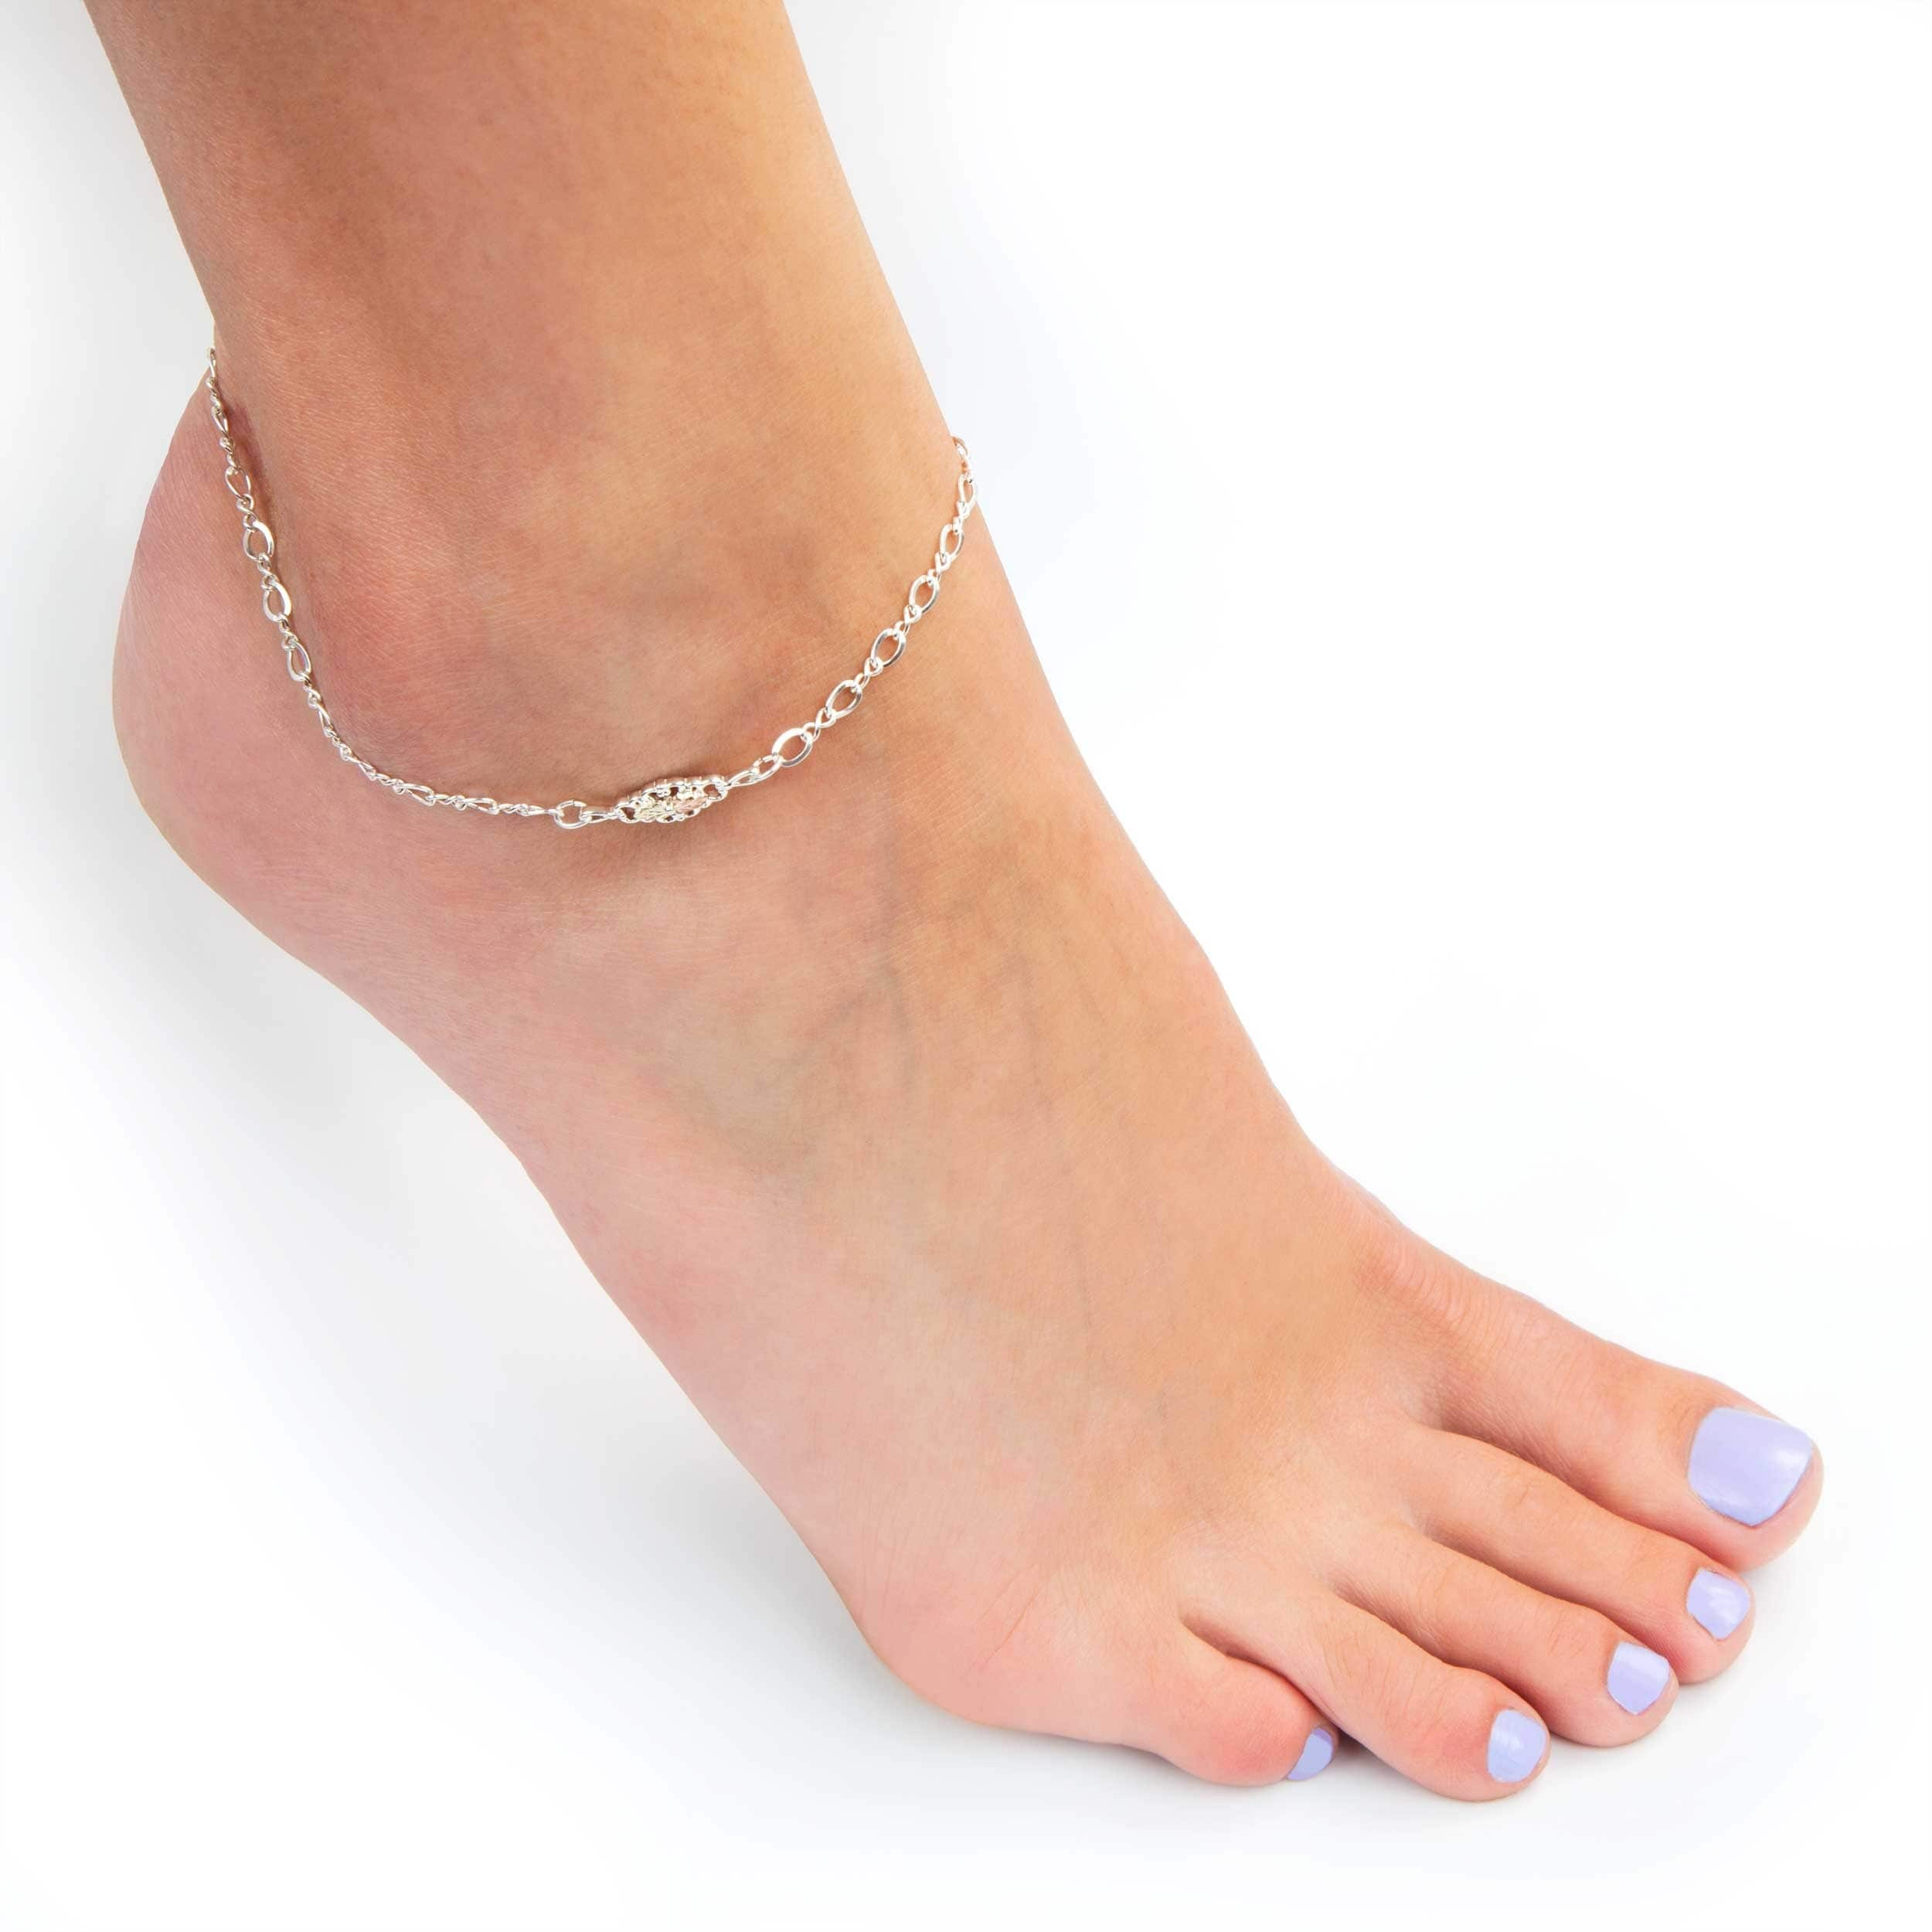 chain sandal sk adjustable ankle leg leaf s bracelet nice gold anklet jewelry p